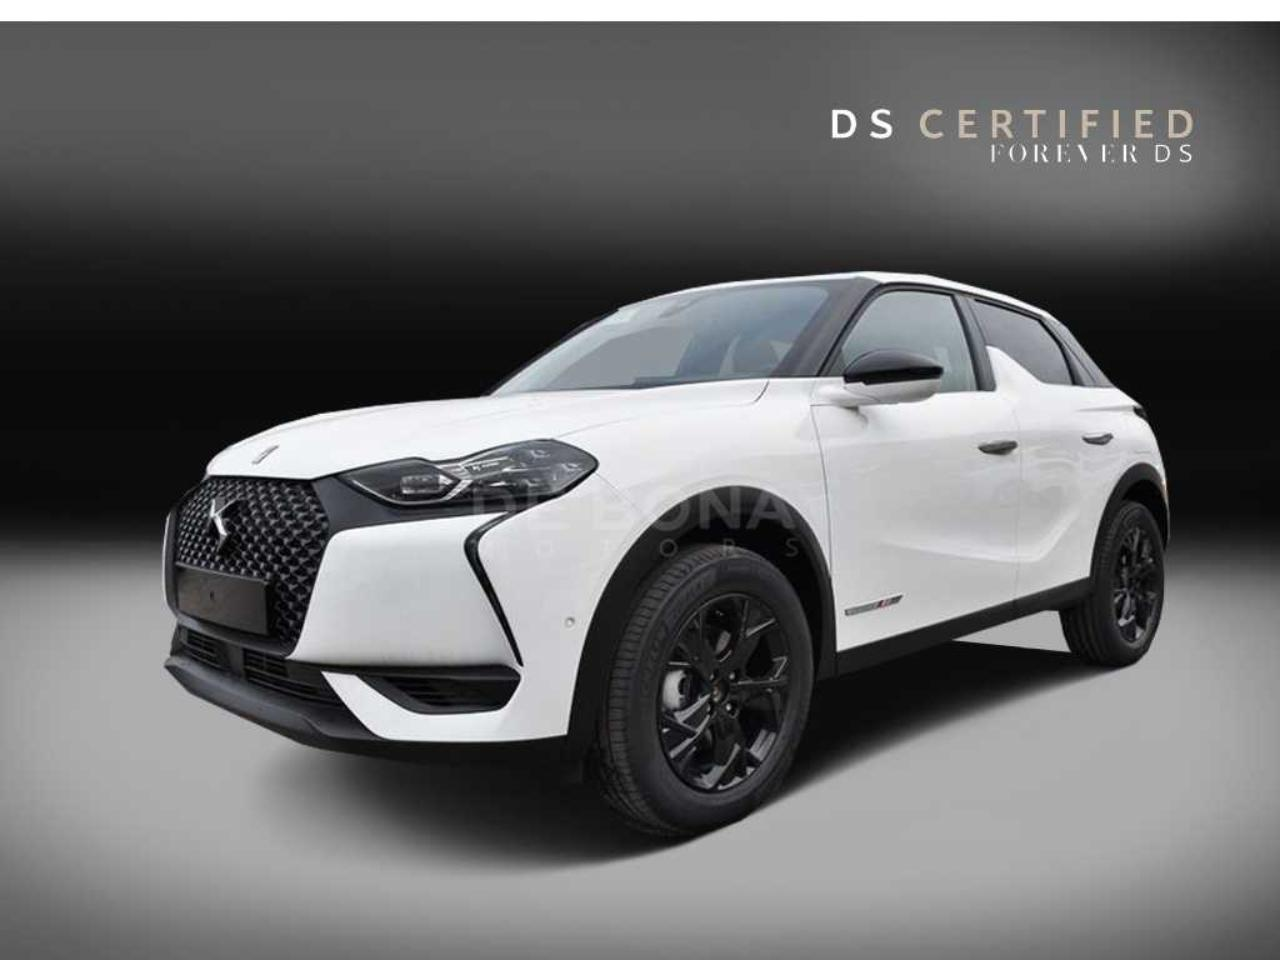 Ds DS 3 Crossback 1.5 bluehdi Performance Line 130cv auto